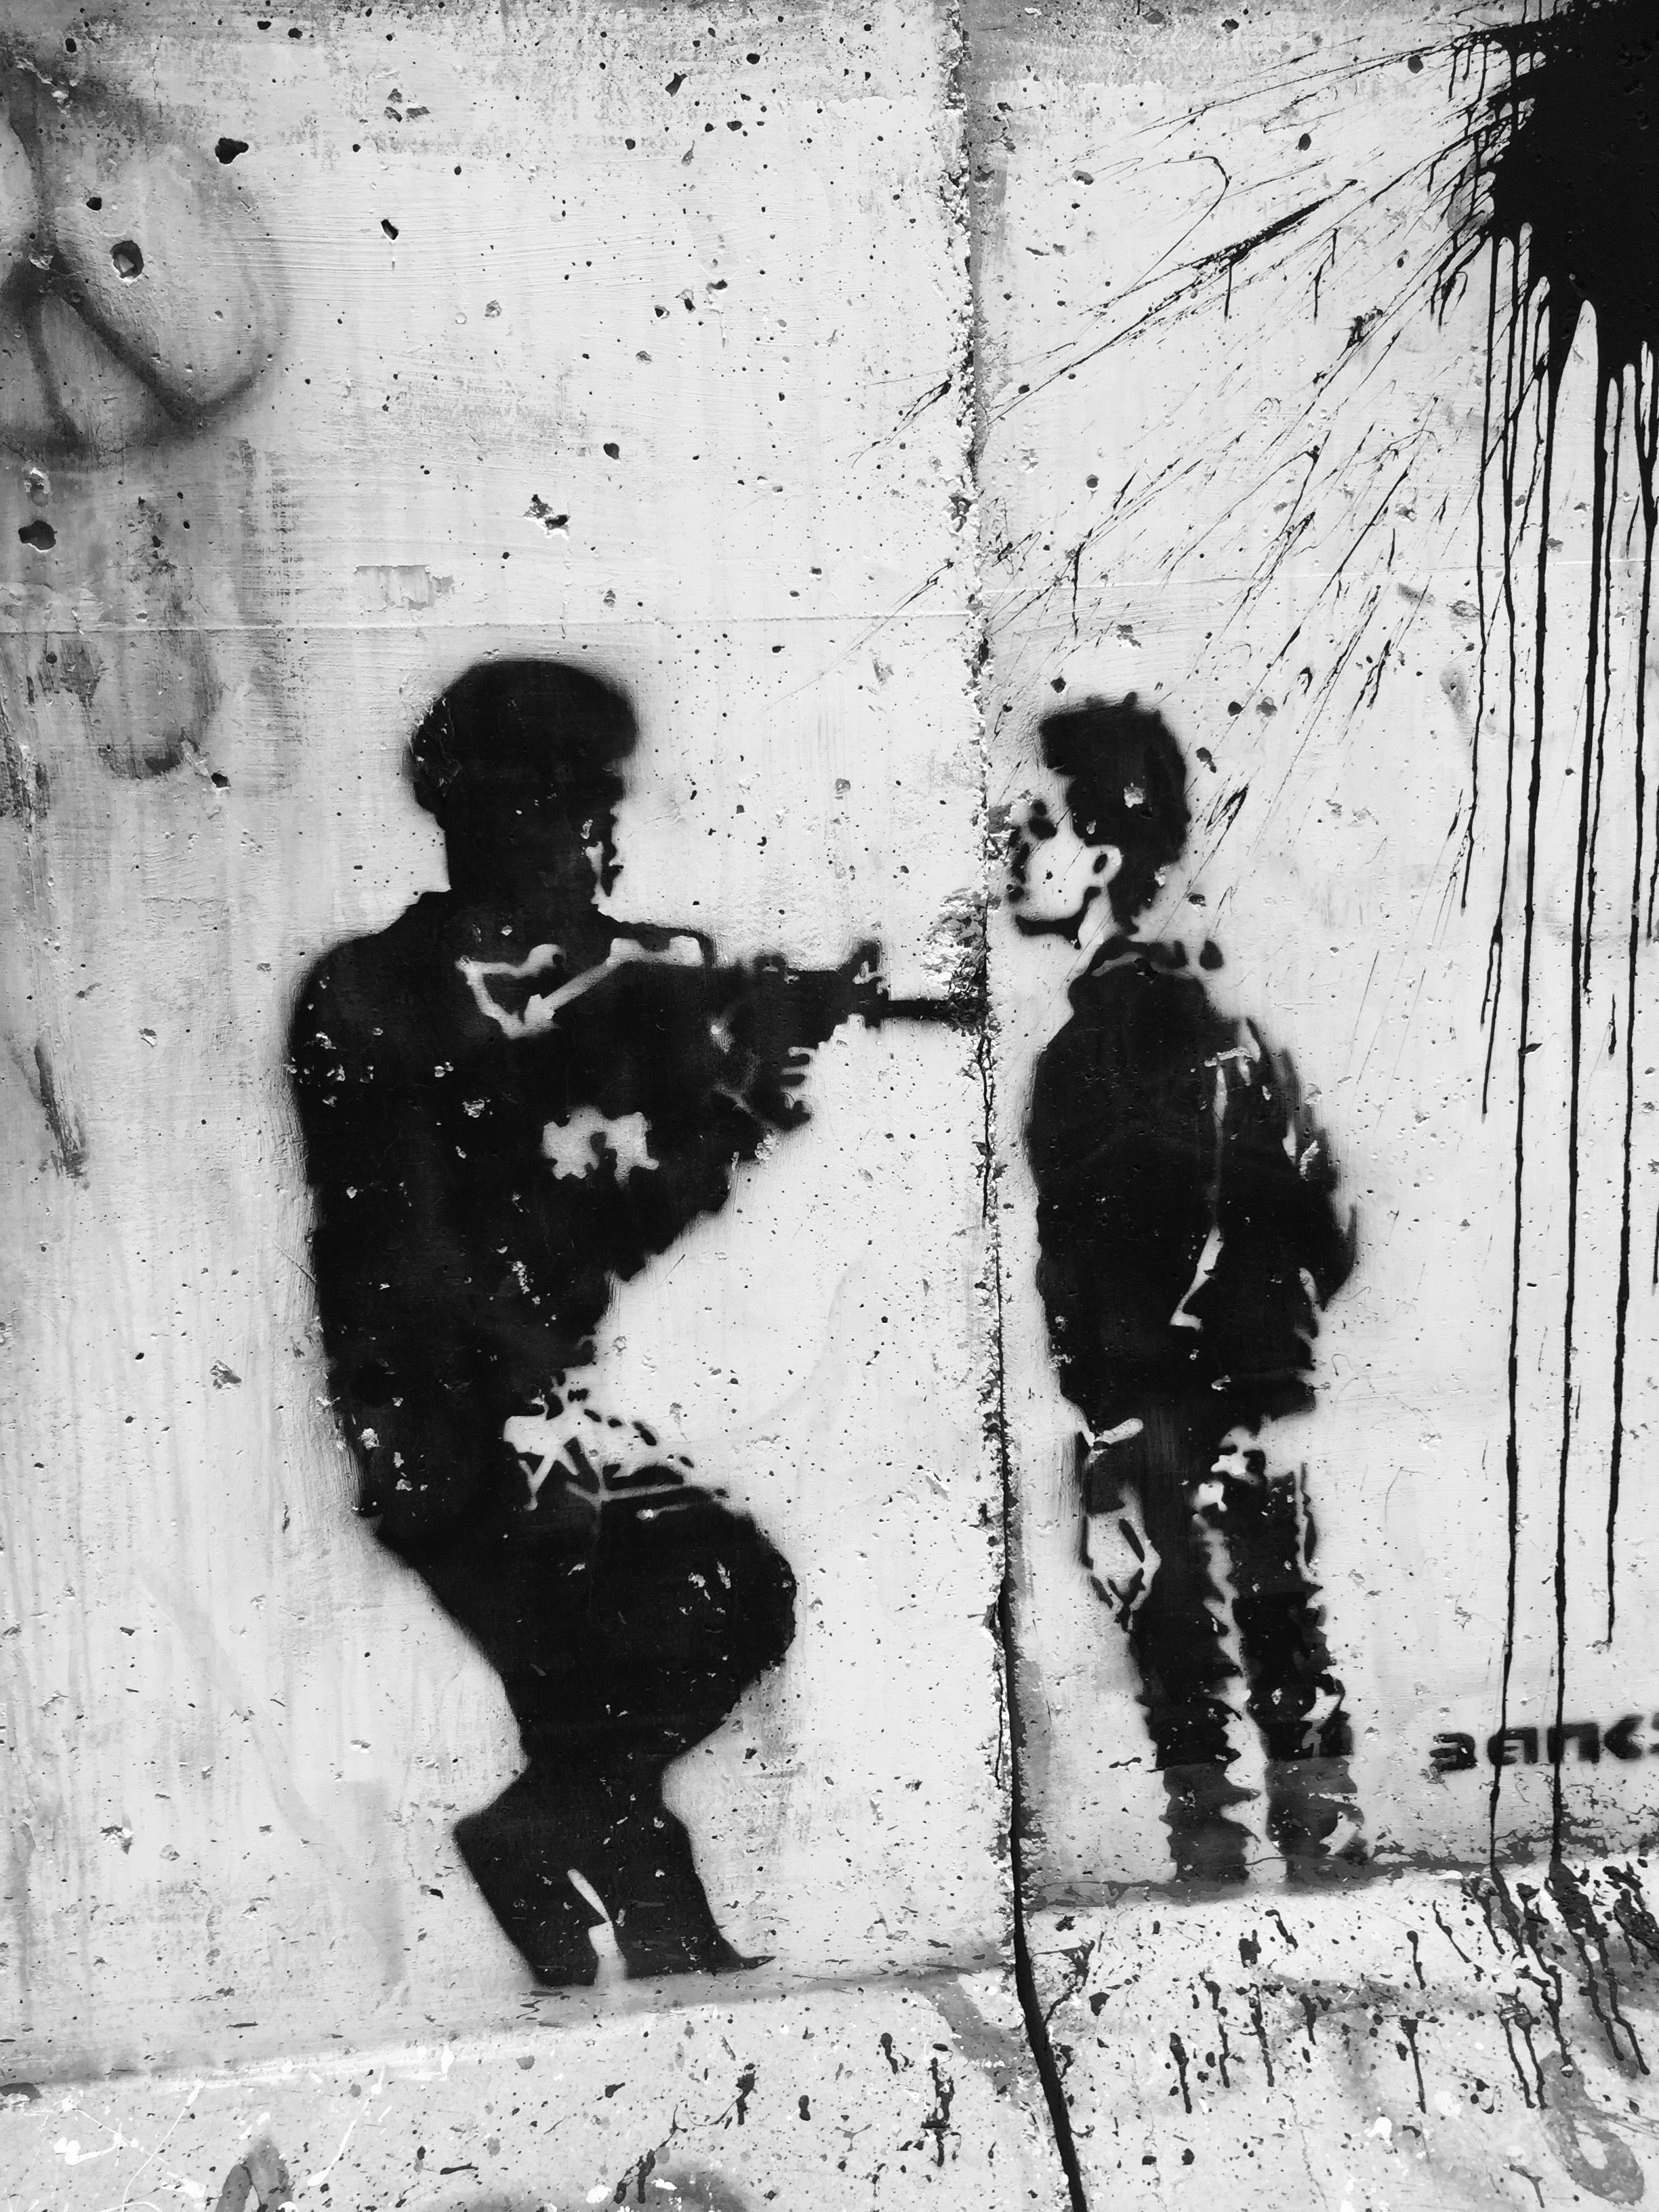 Matthew Williams/The Conflict Archives: Graffiti by Palestinians.